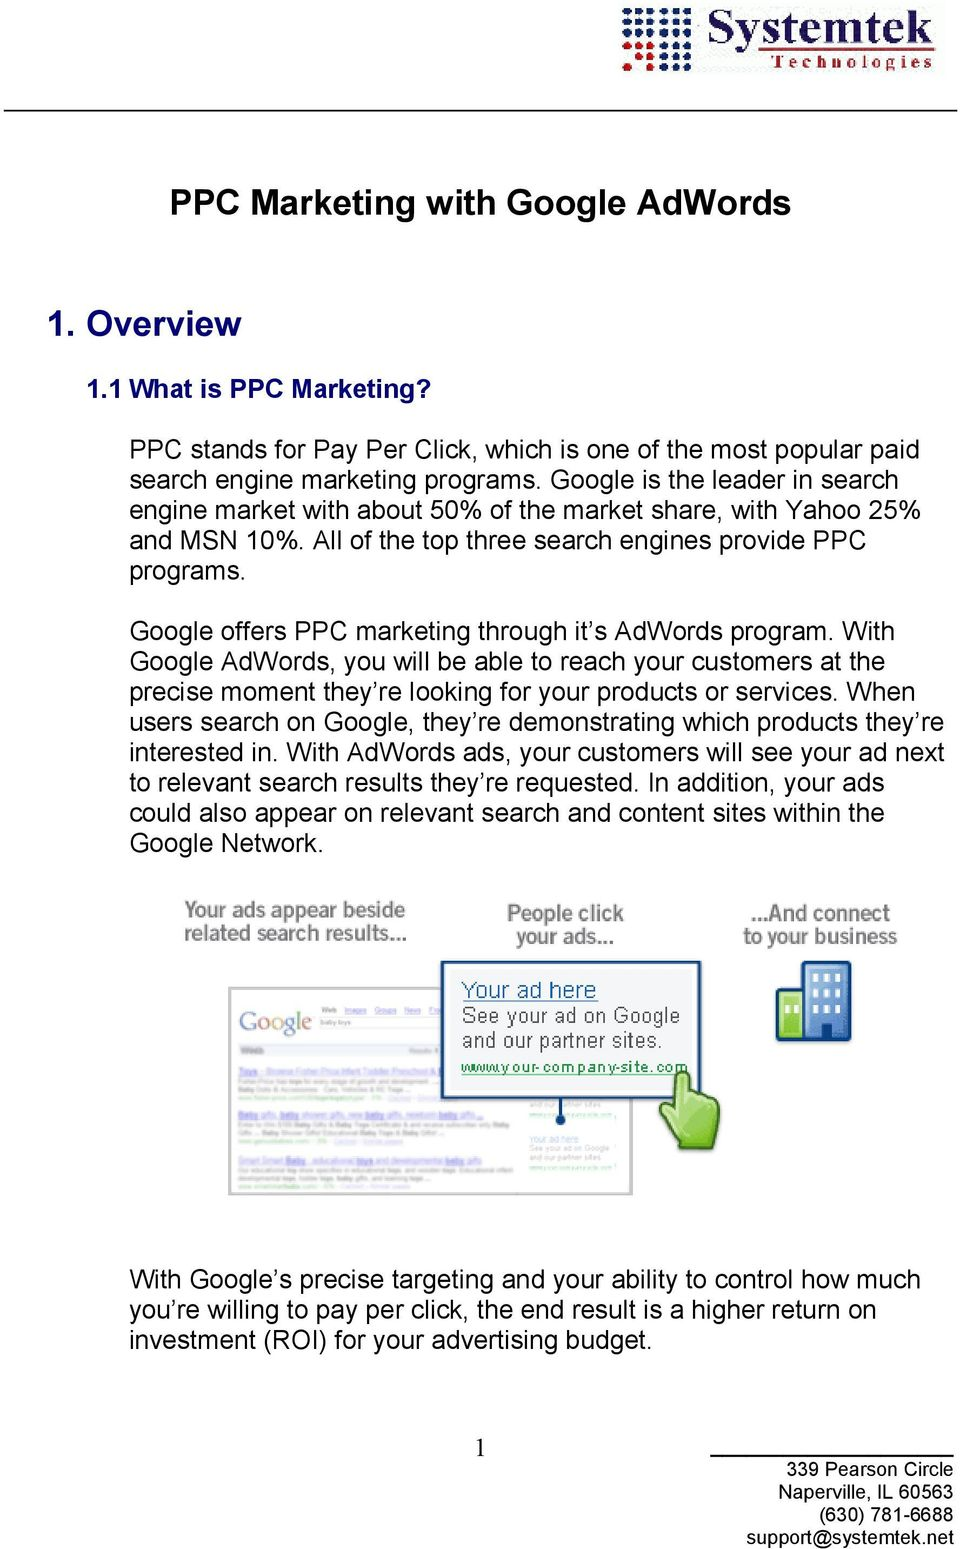 Google offers PPC marketing through it s AdWords program. With Google AdWords, you will be able to reach your customers at the precise moment they re looking for your products or services.